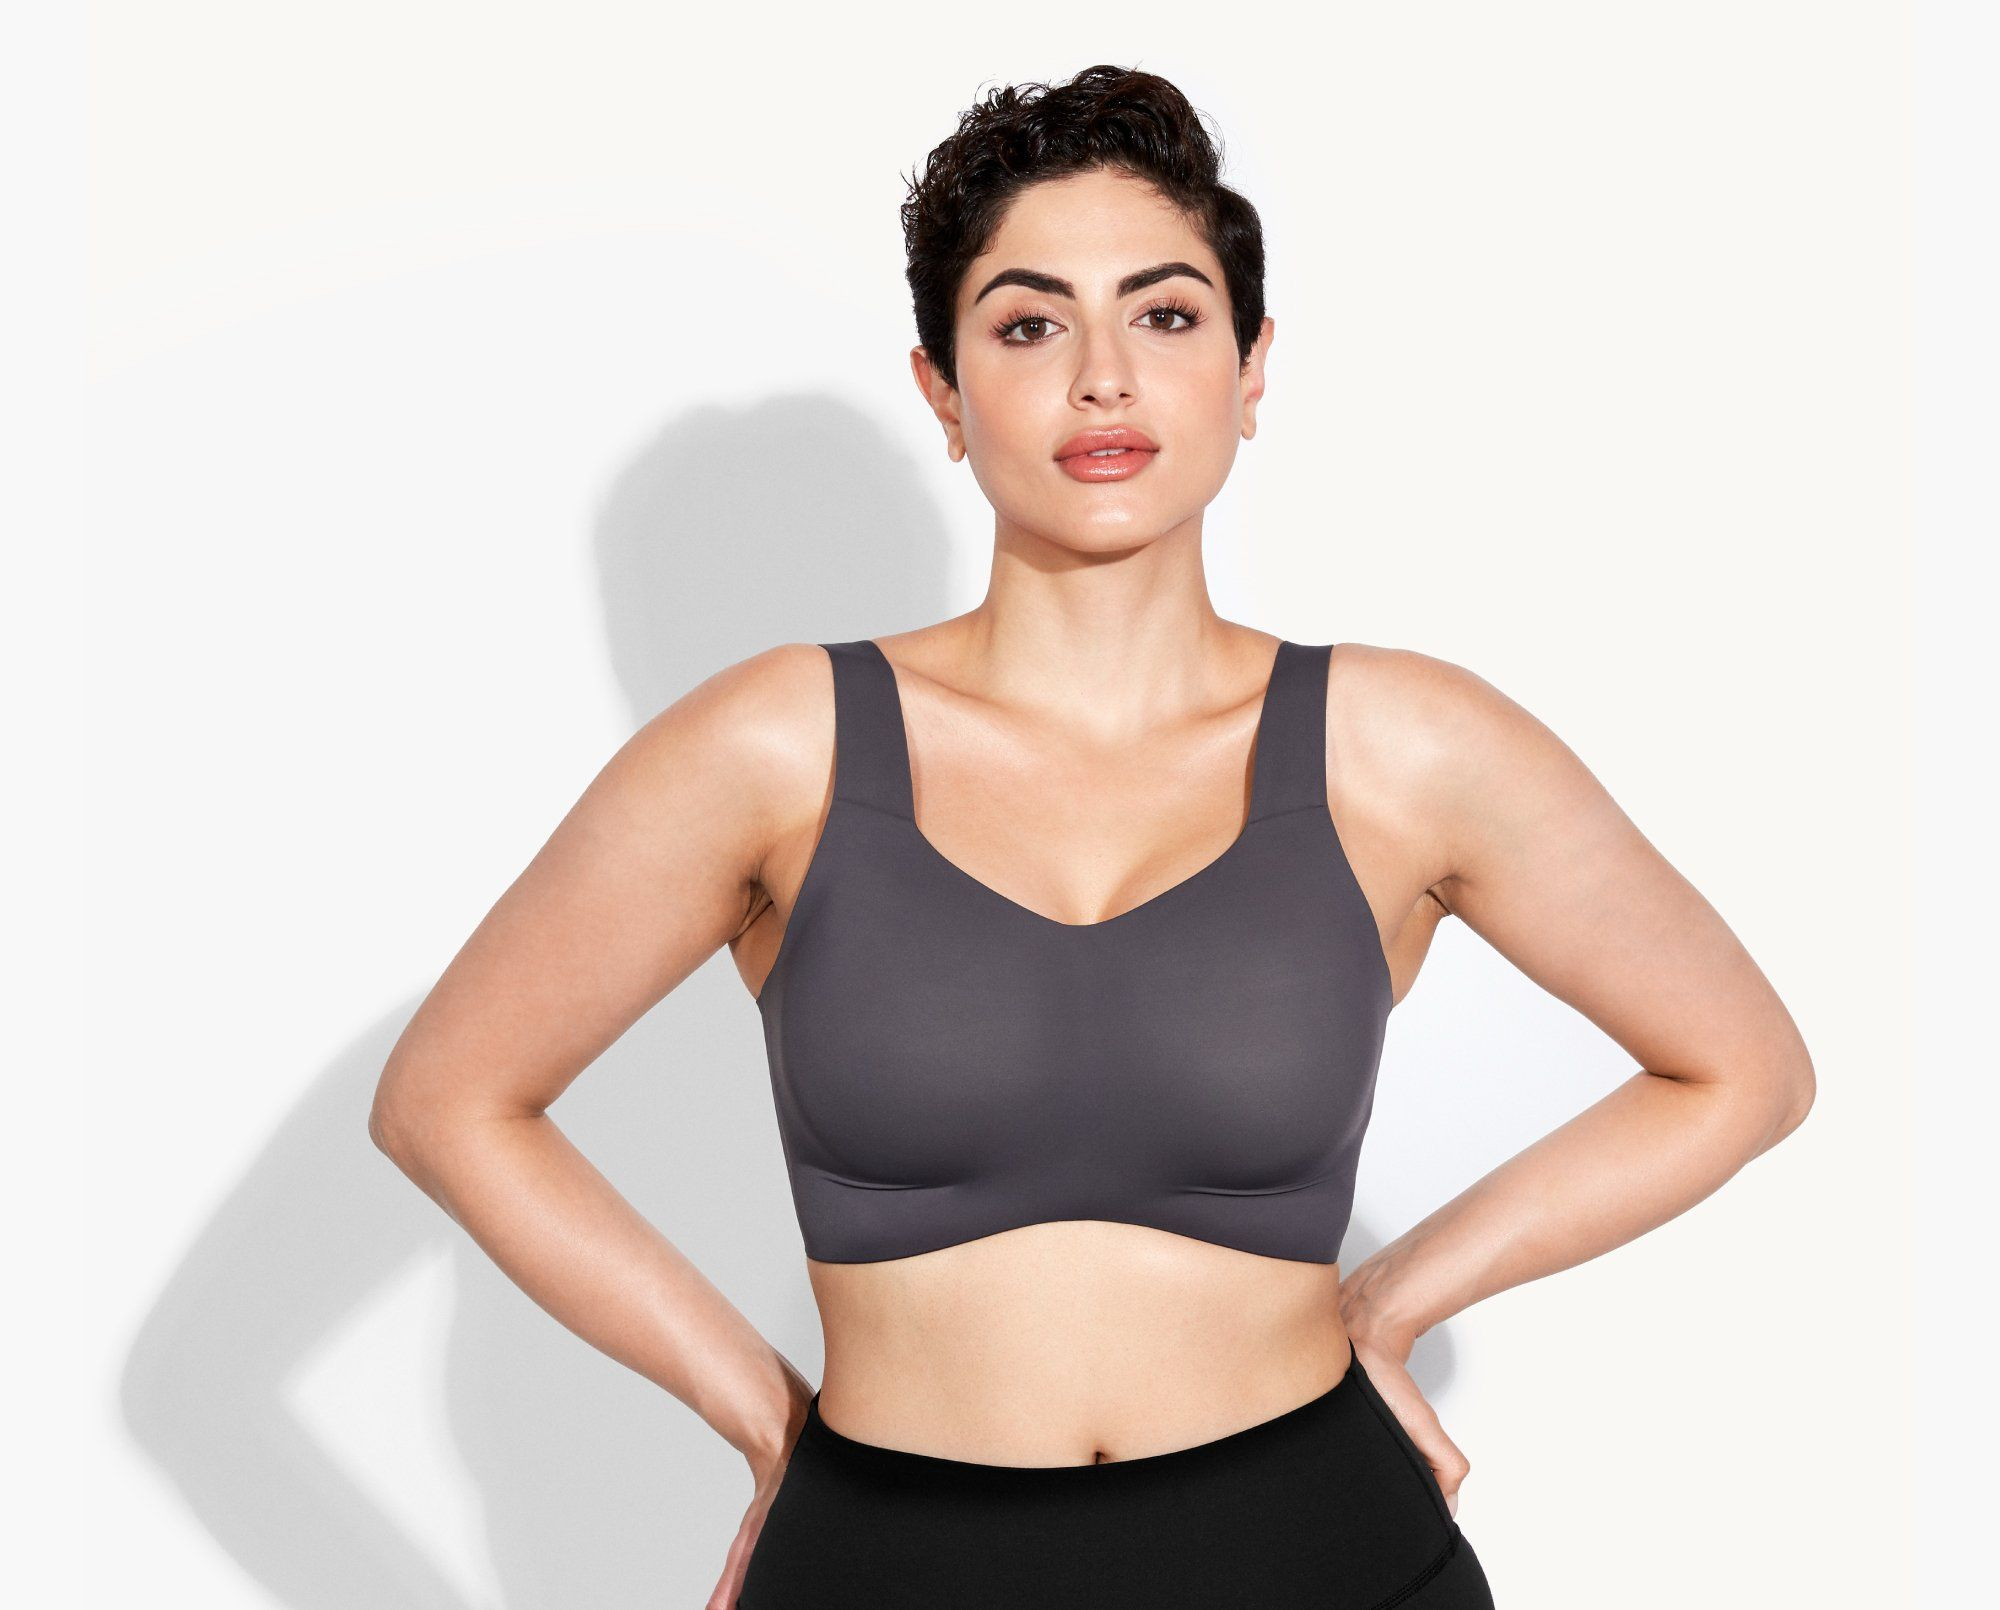 c9984b126051b Knix offers the most support and comfort with its new sports bra